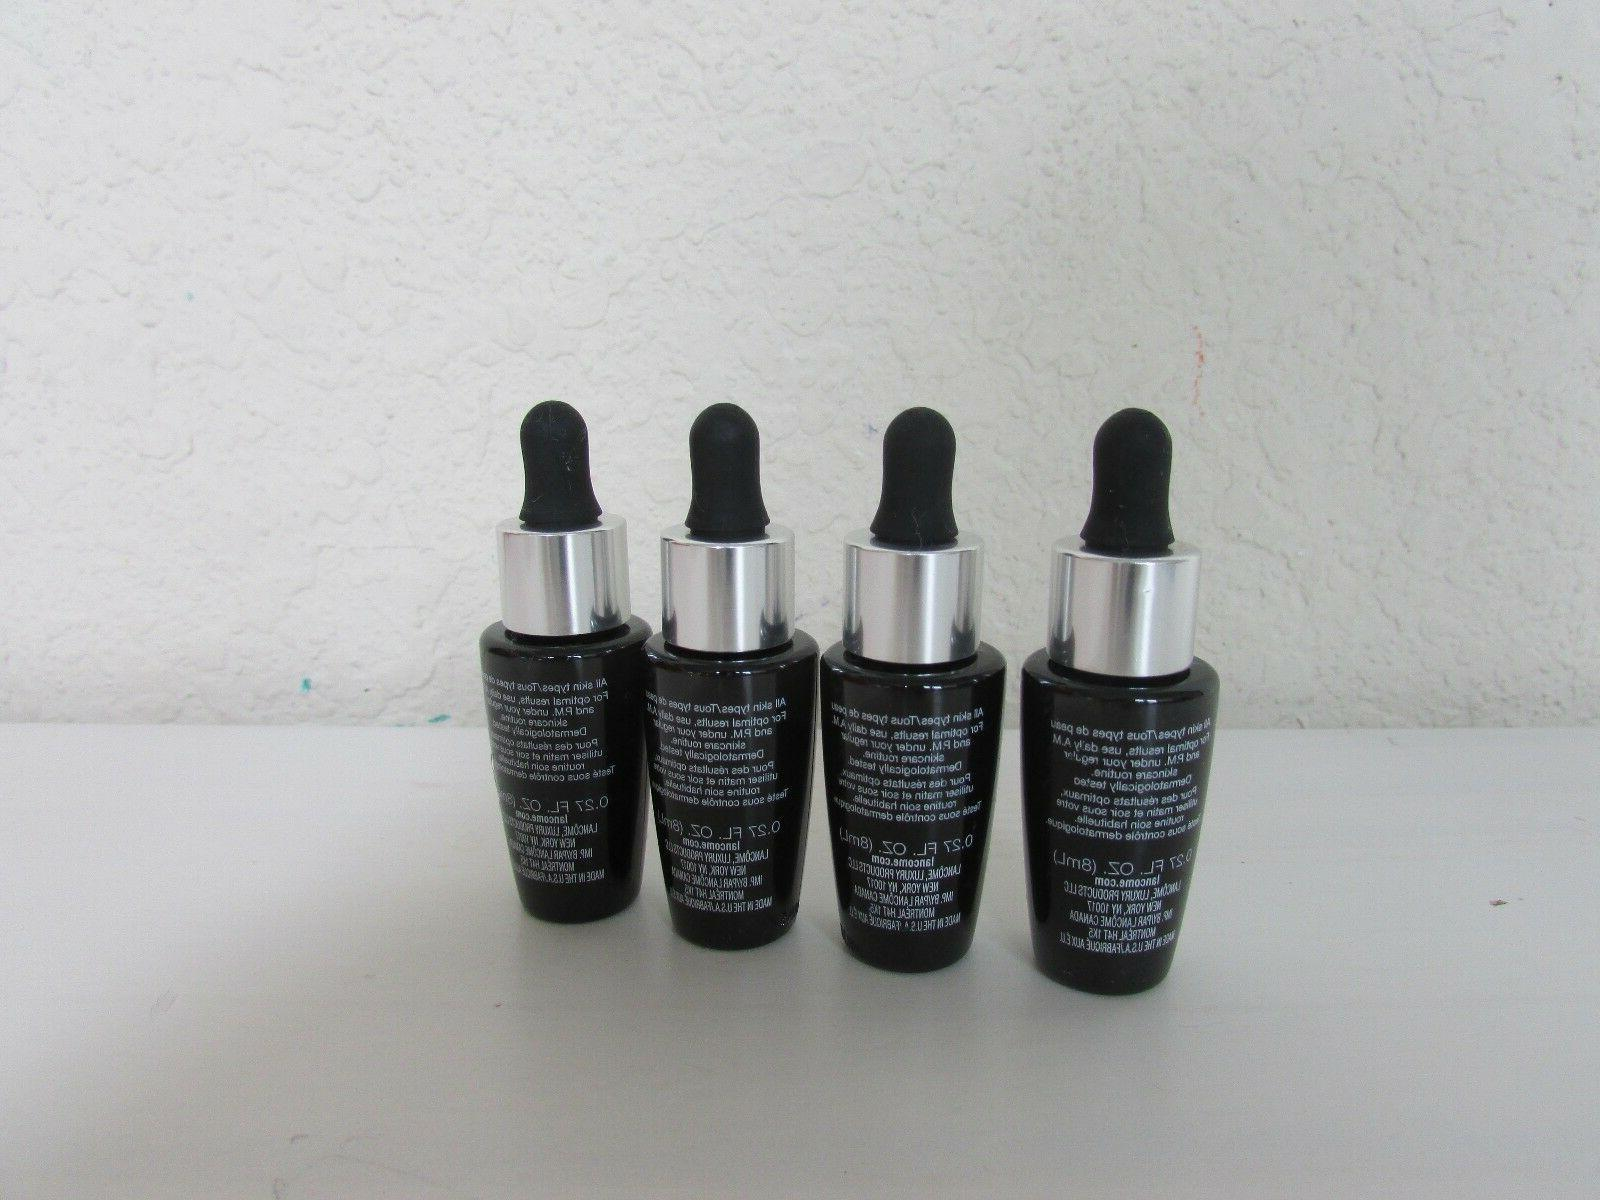 4 Lancome Advanced Youth Activating Concentrate 1.08 oz/32ml Total